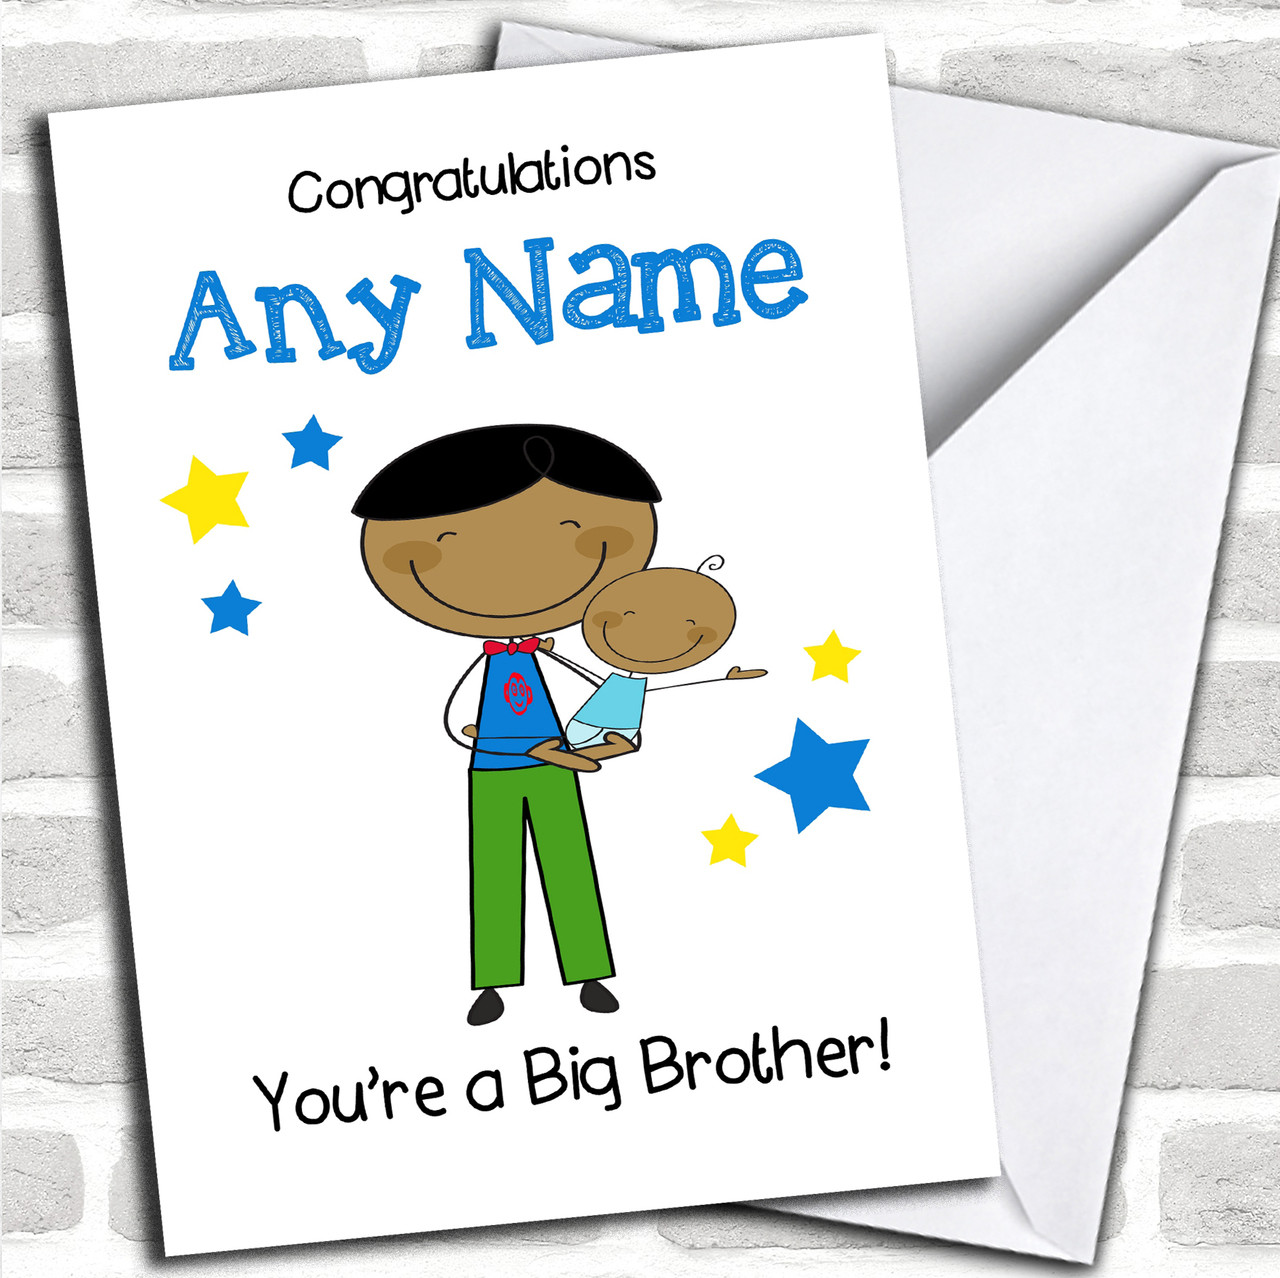 Amazon.com: VictoryStore Baby Shower Decorations: Congratulations On Your  Baby Boy Banner - Baby Boy Waterproof Vinyl Banner (3 feet Tall) (3 feet by  5 feet): Office Products